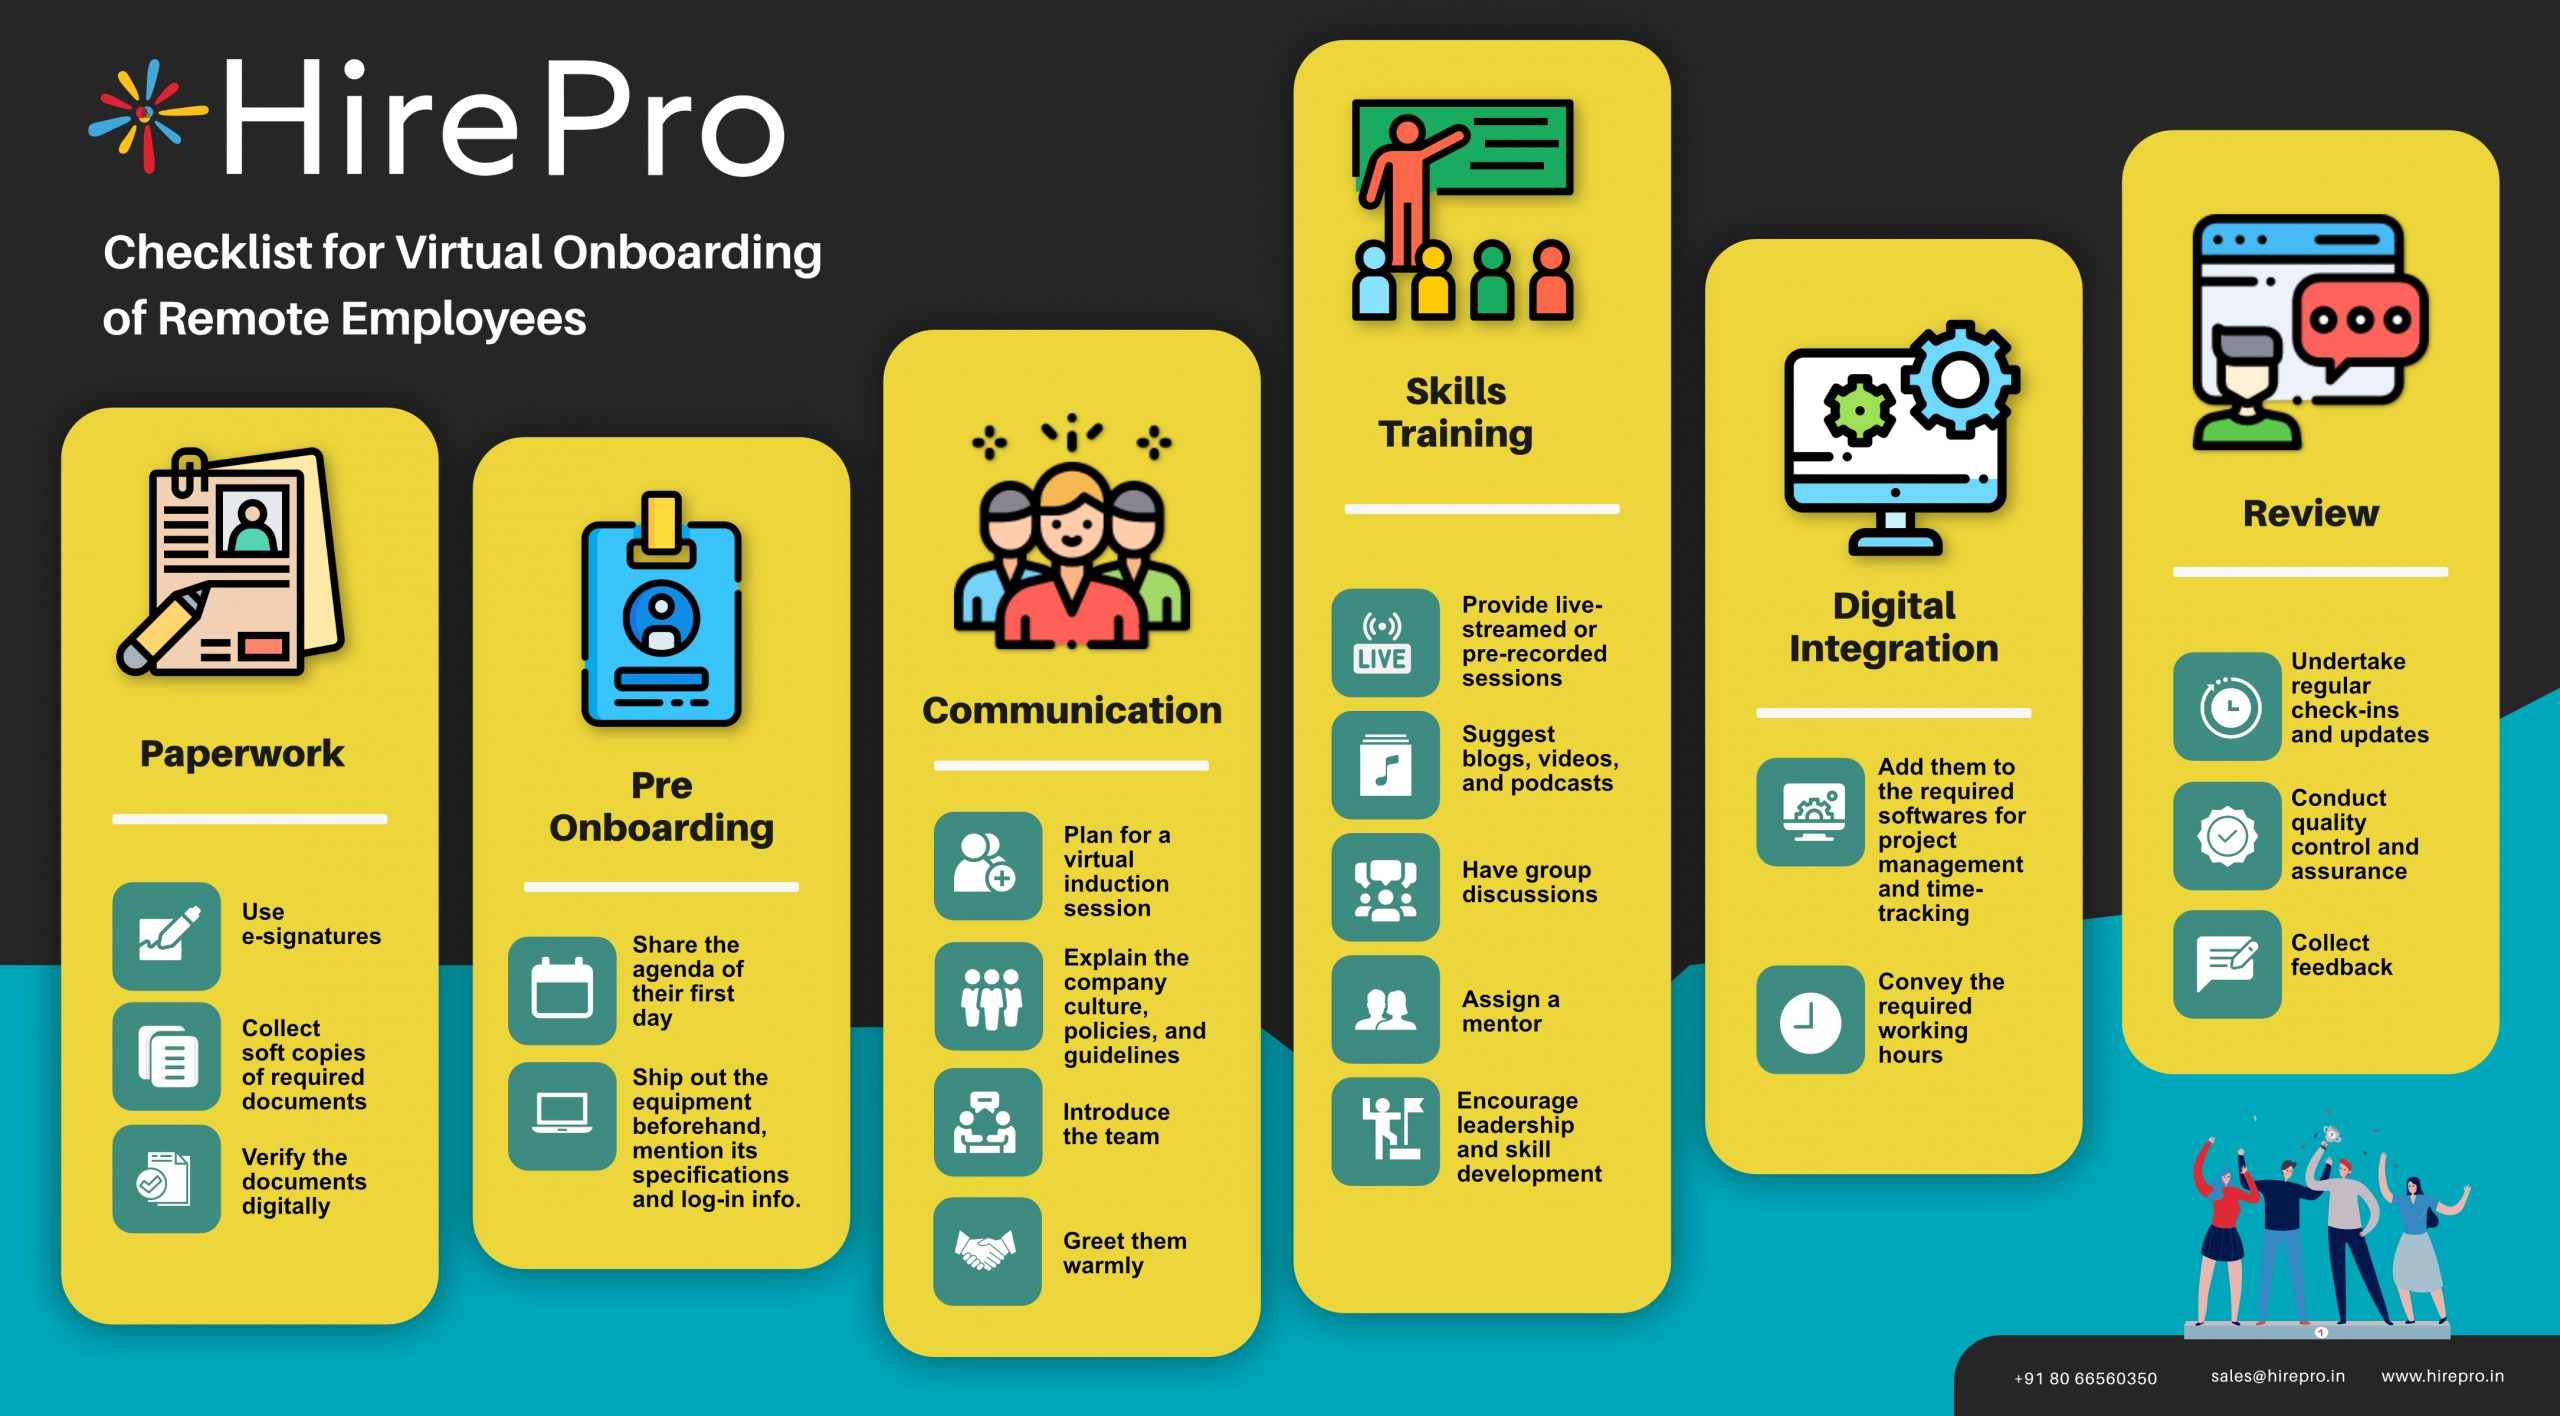 Checklist for Virtual Onboarding of Remote Employees